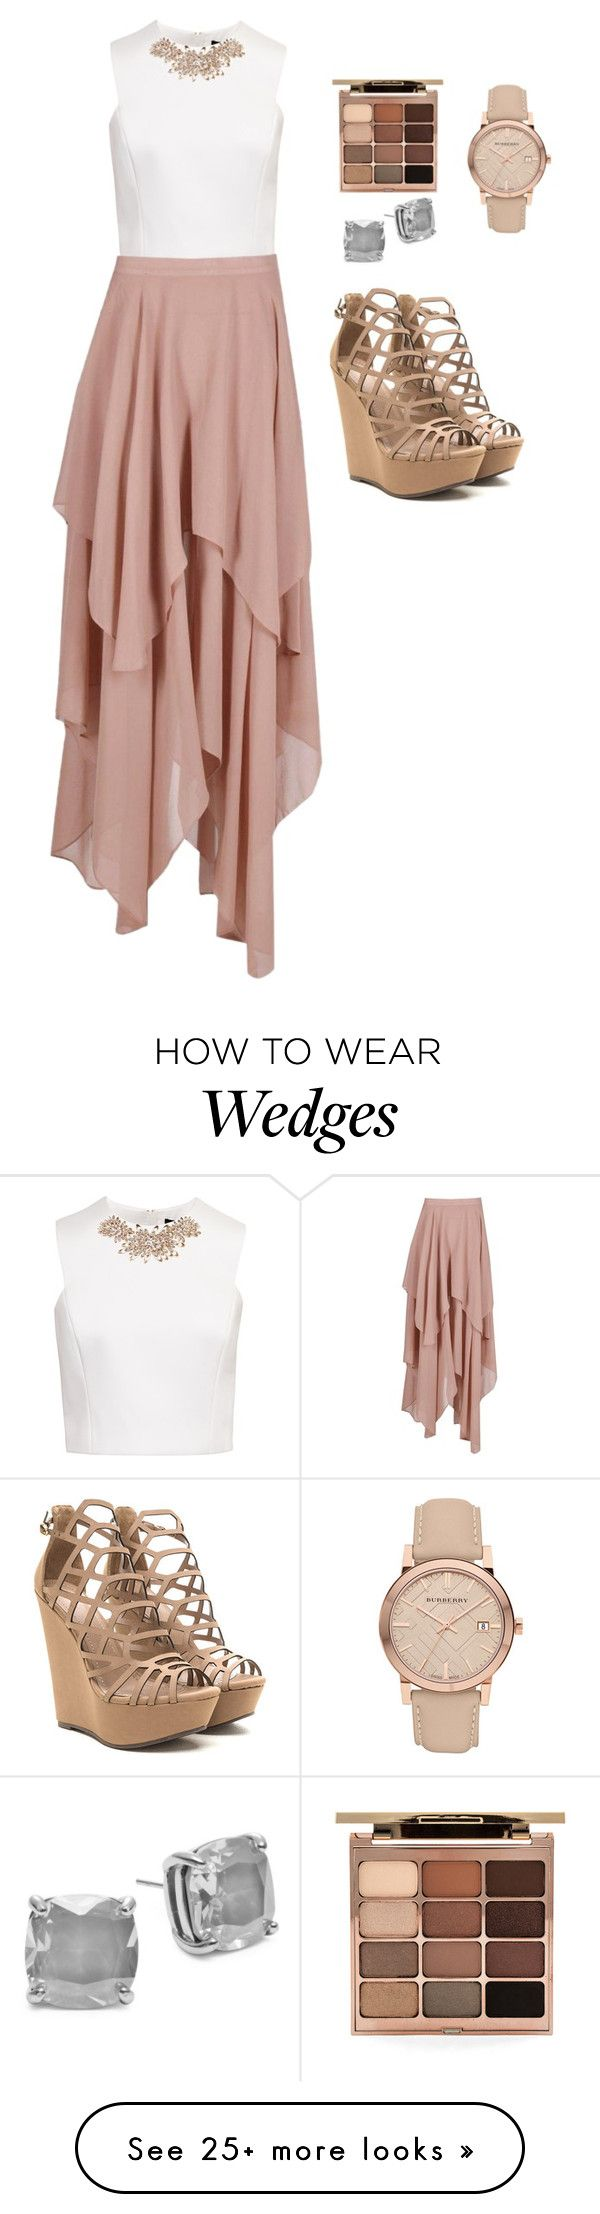 """#11"" by unipanda04 on Polyvore featuring Ted Baker, Boohoo, Stila, Burberry and Kate Spade"